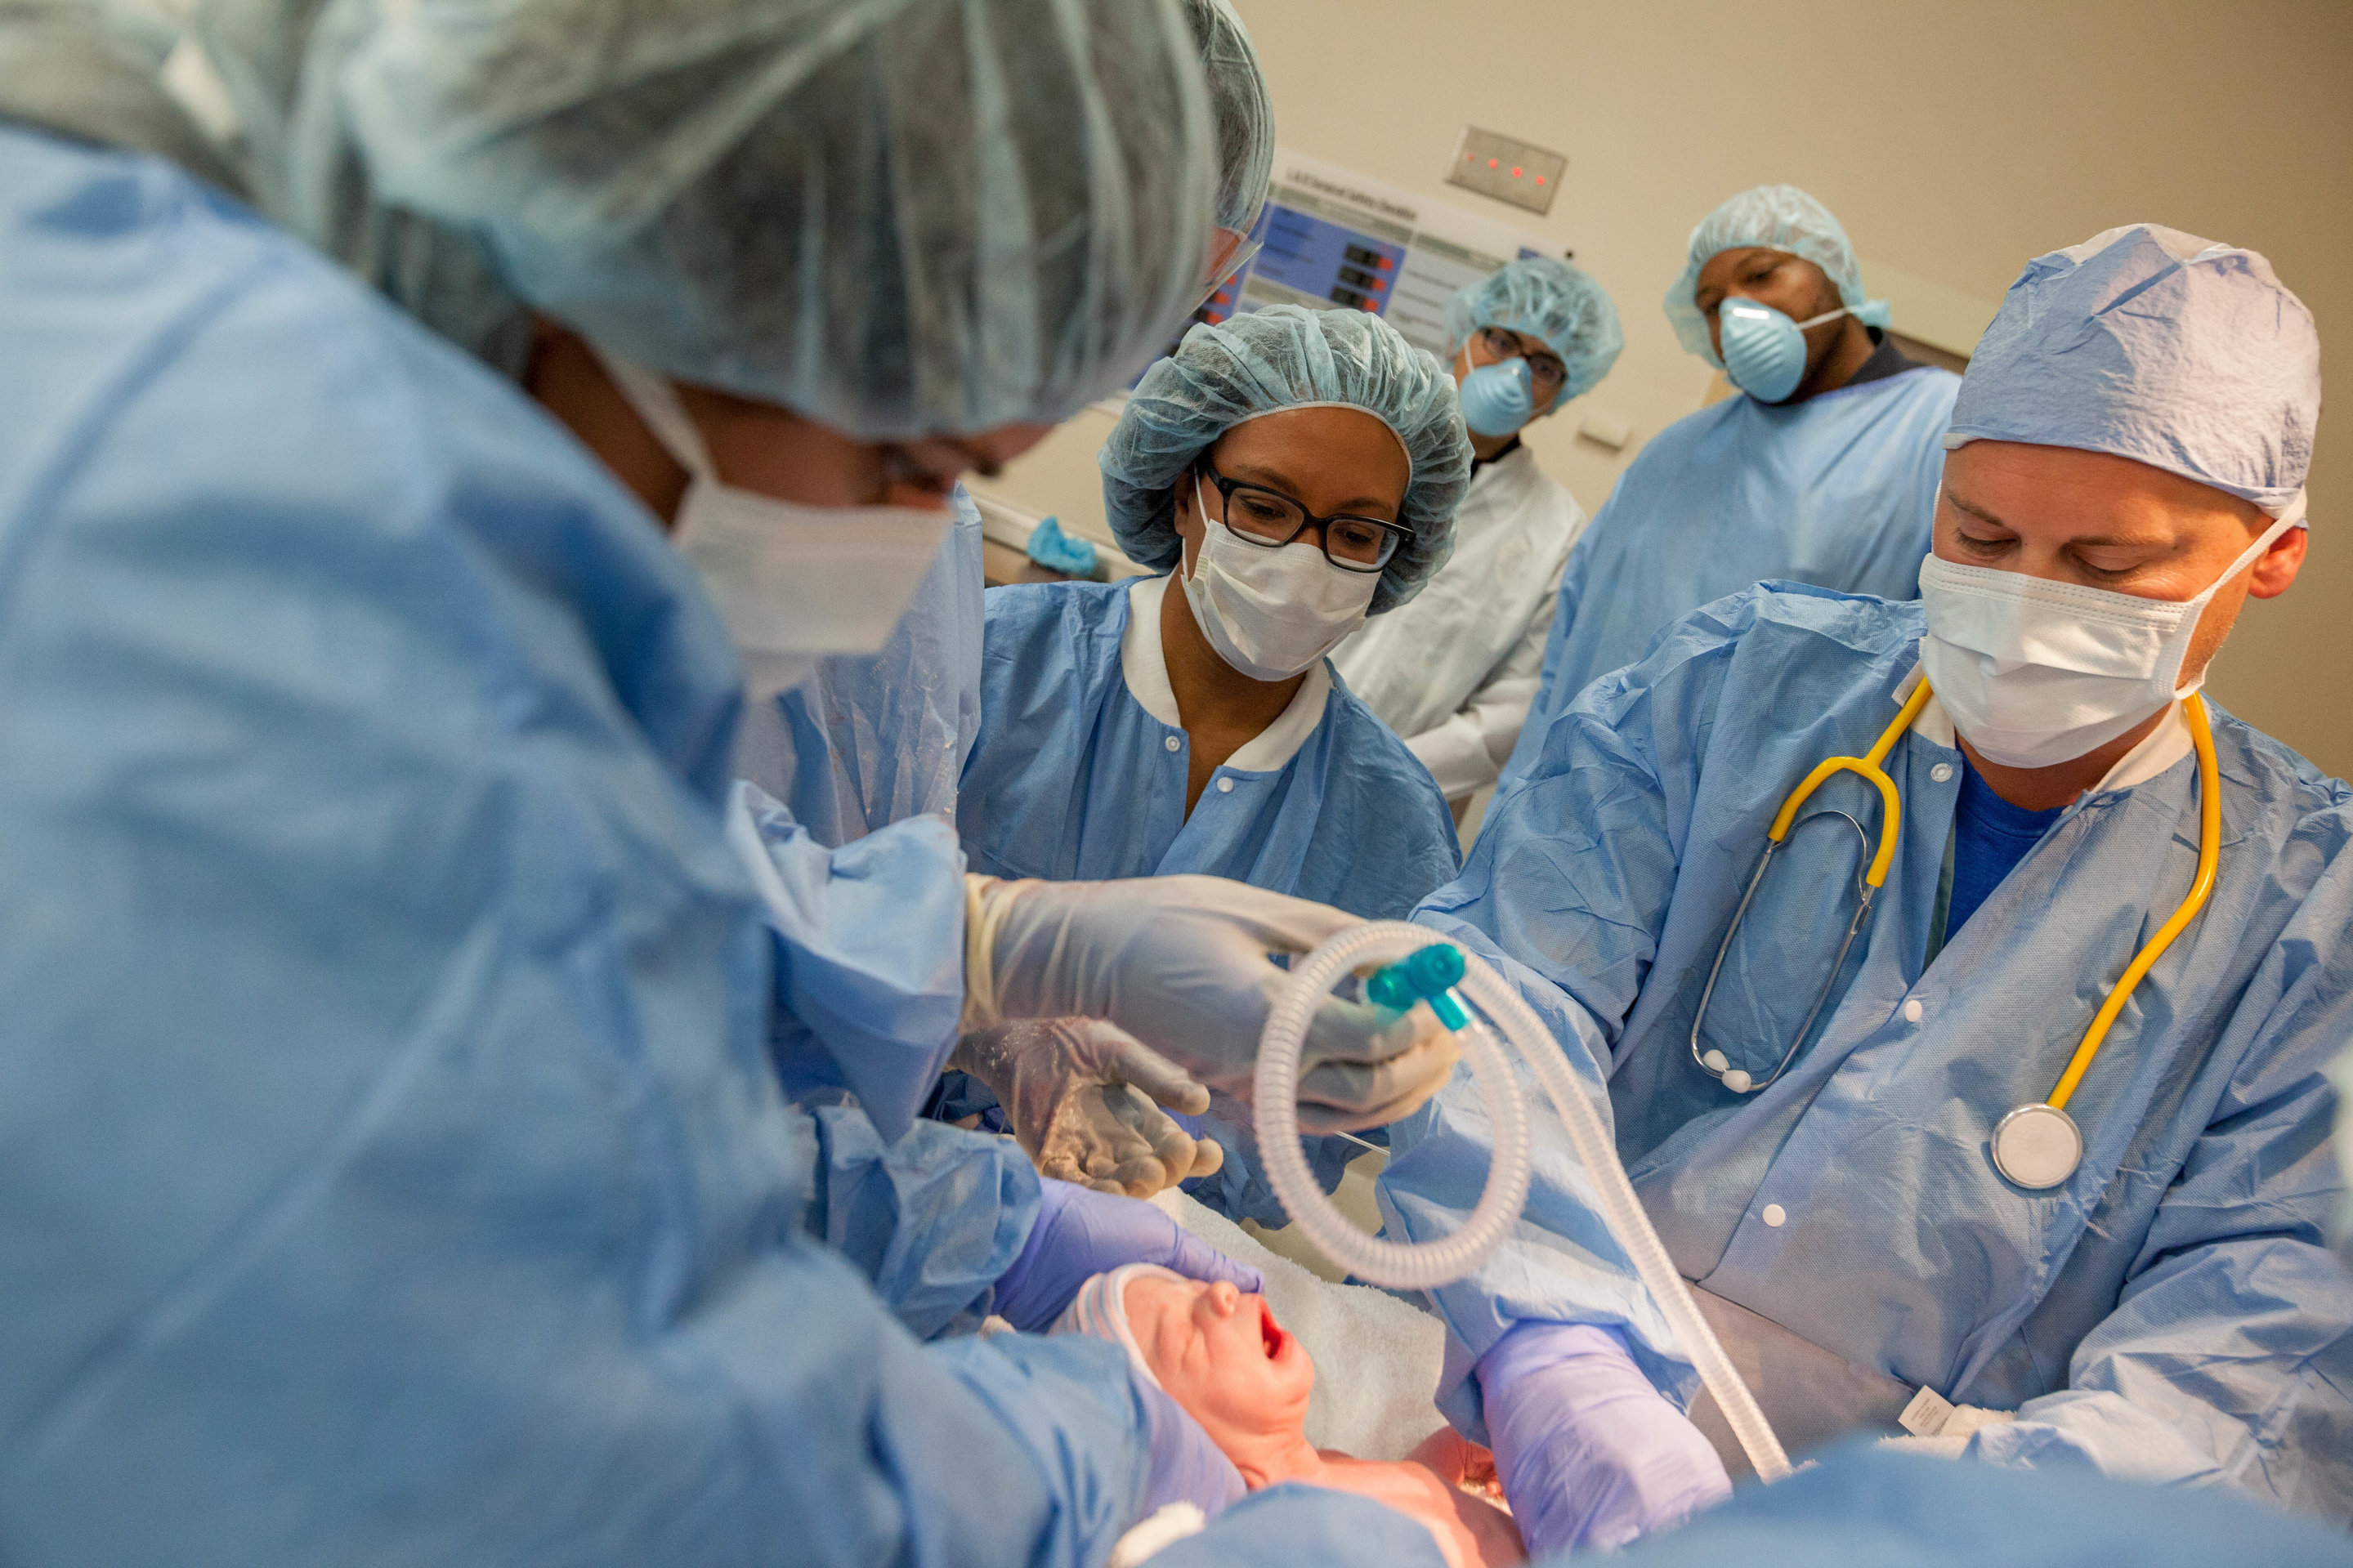 Inducing labor at 39 weeks reduces risks of C-section and ...